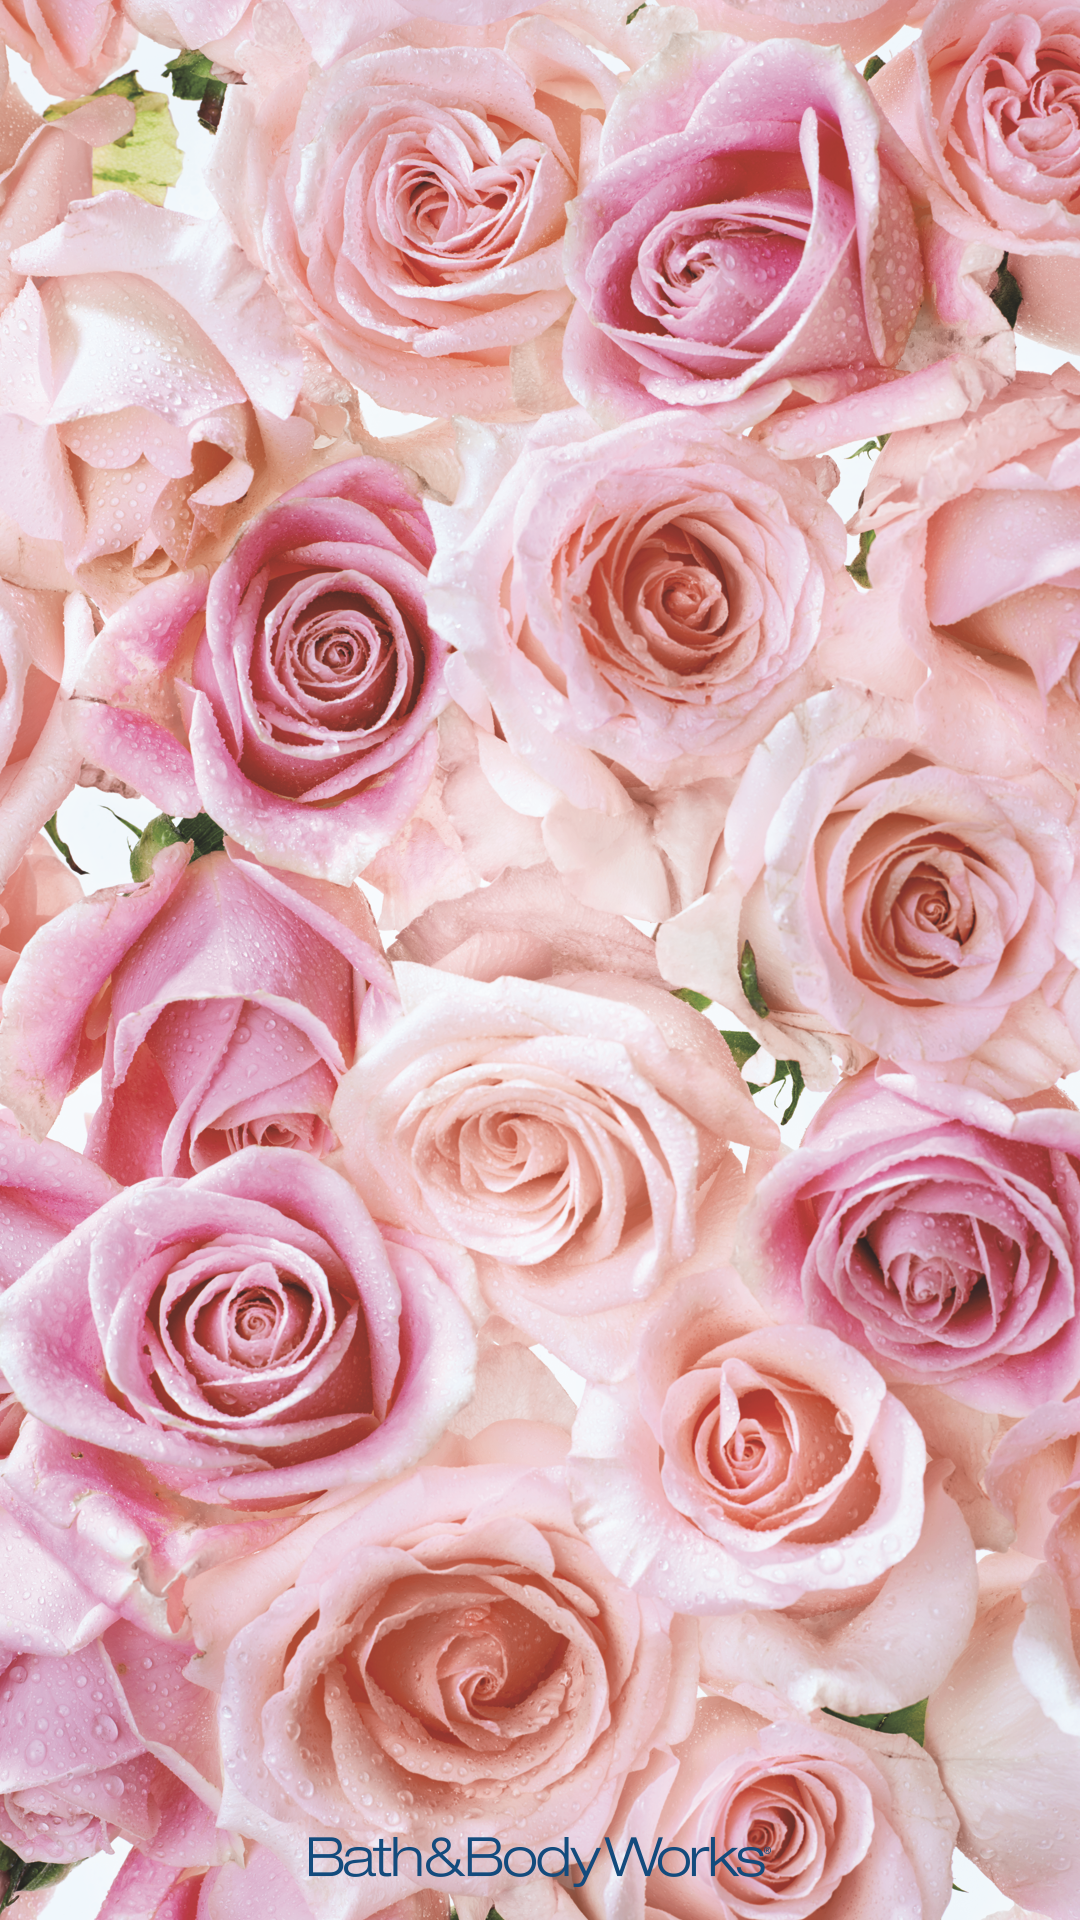 Pin by Bath Body Works on Now Trending Rose in 2019 Flower 1080x1920